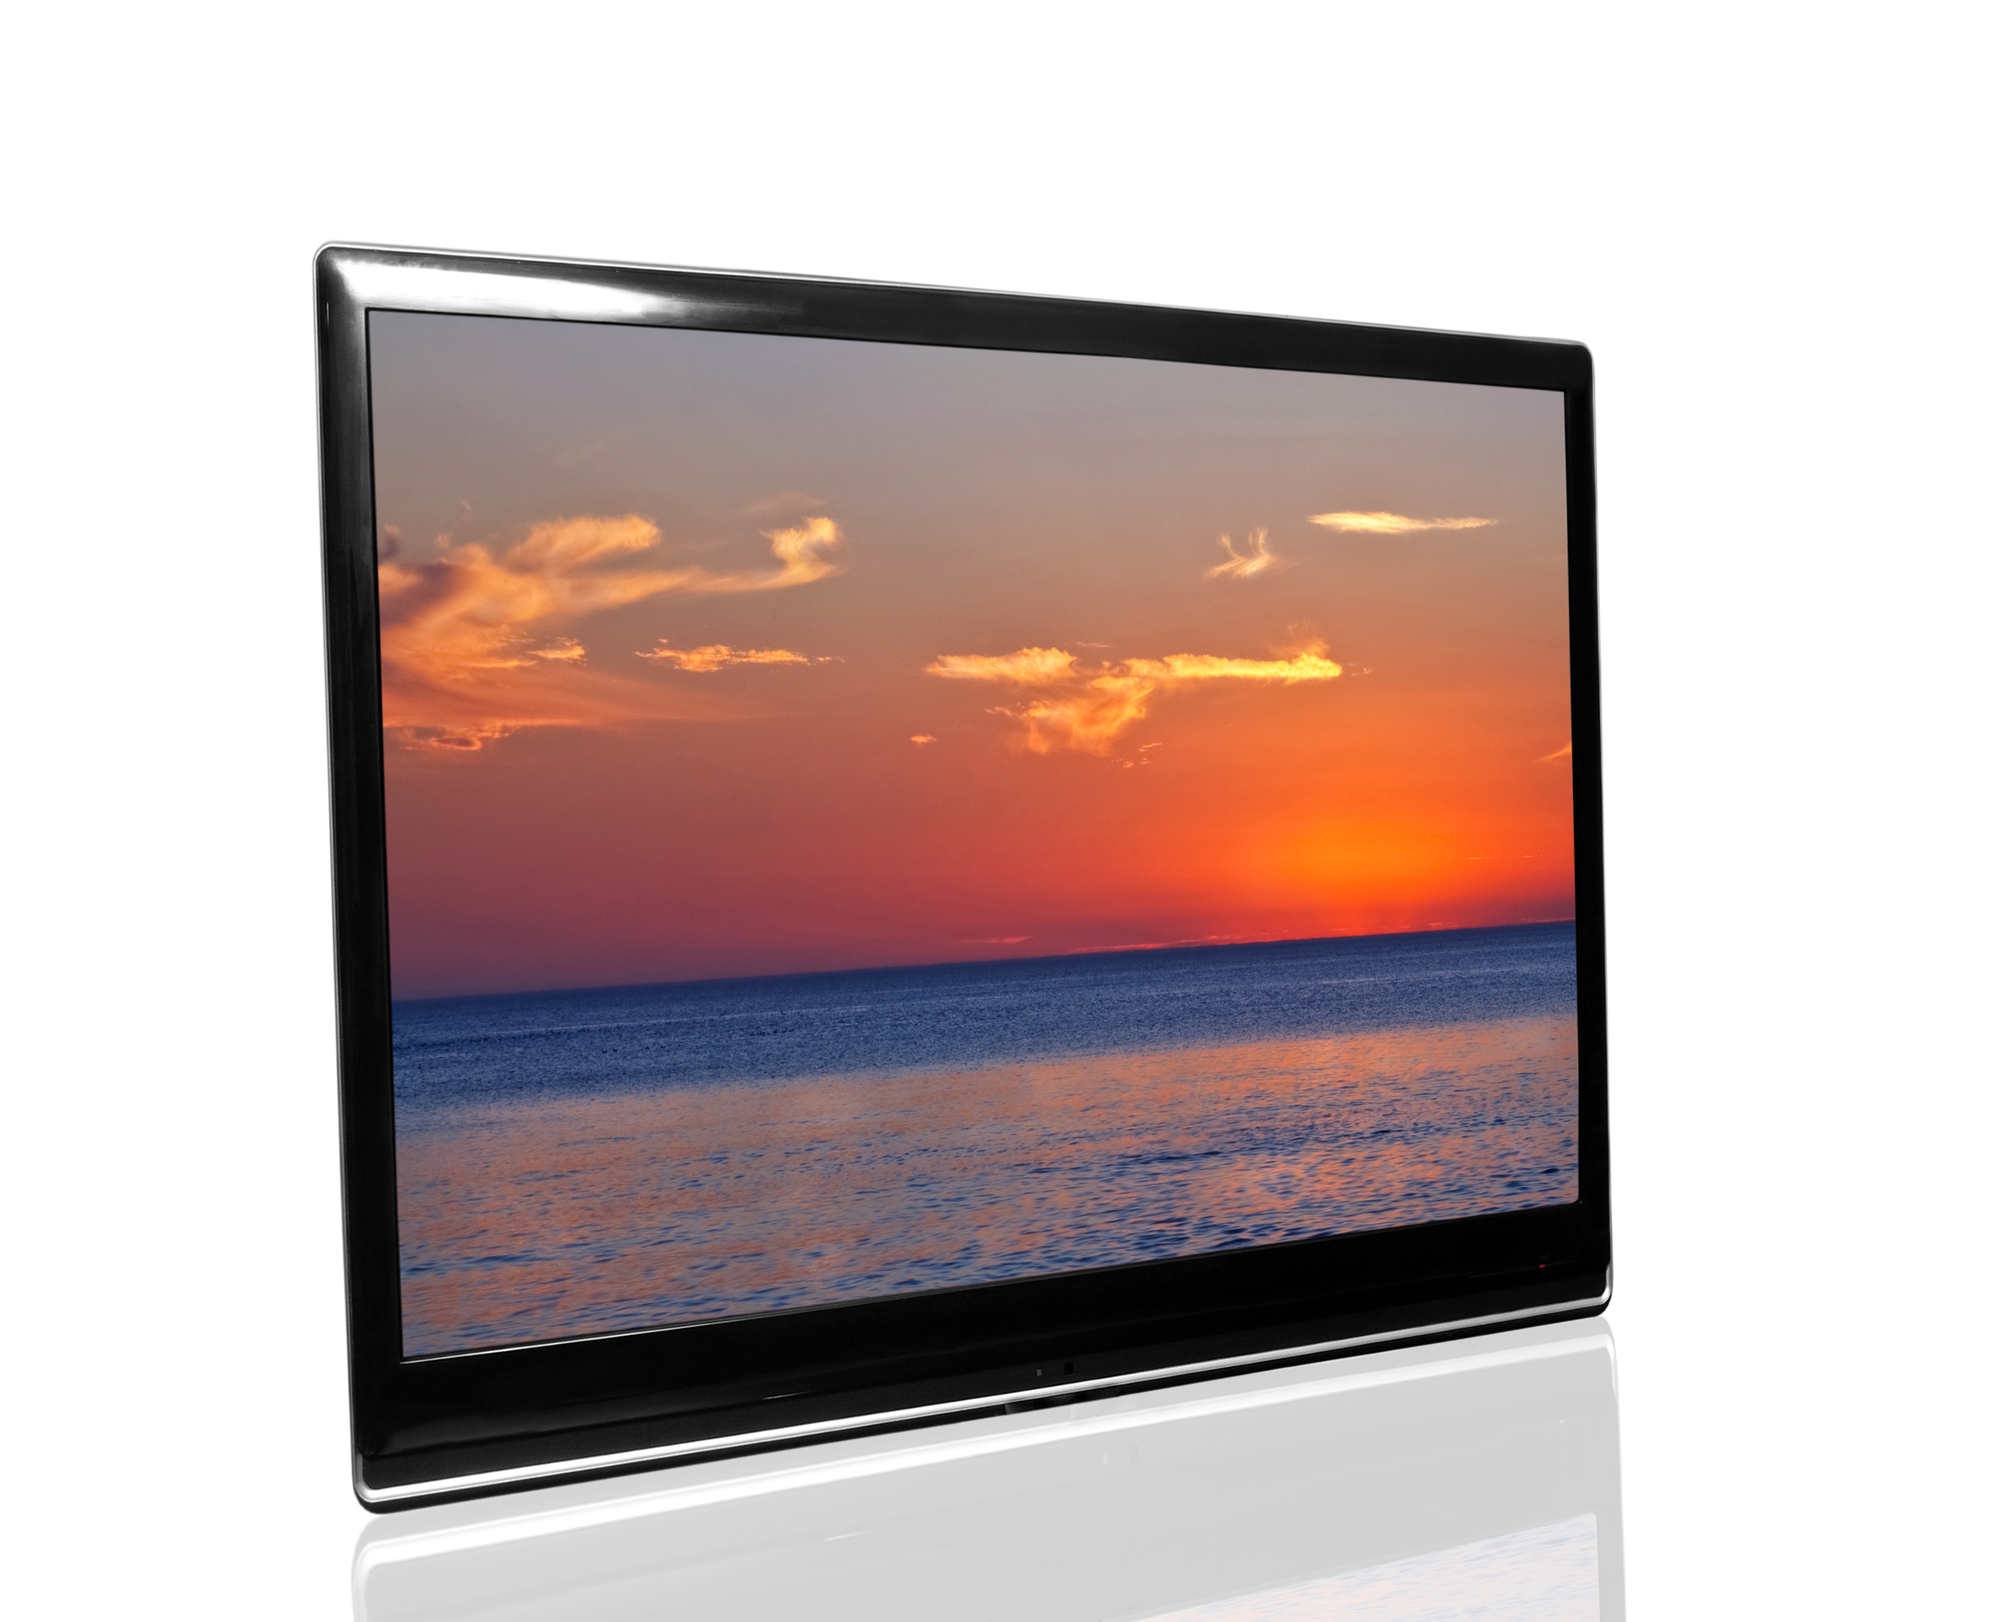 Tv showing sunset